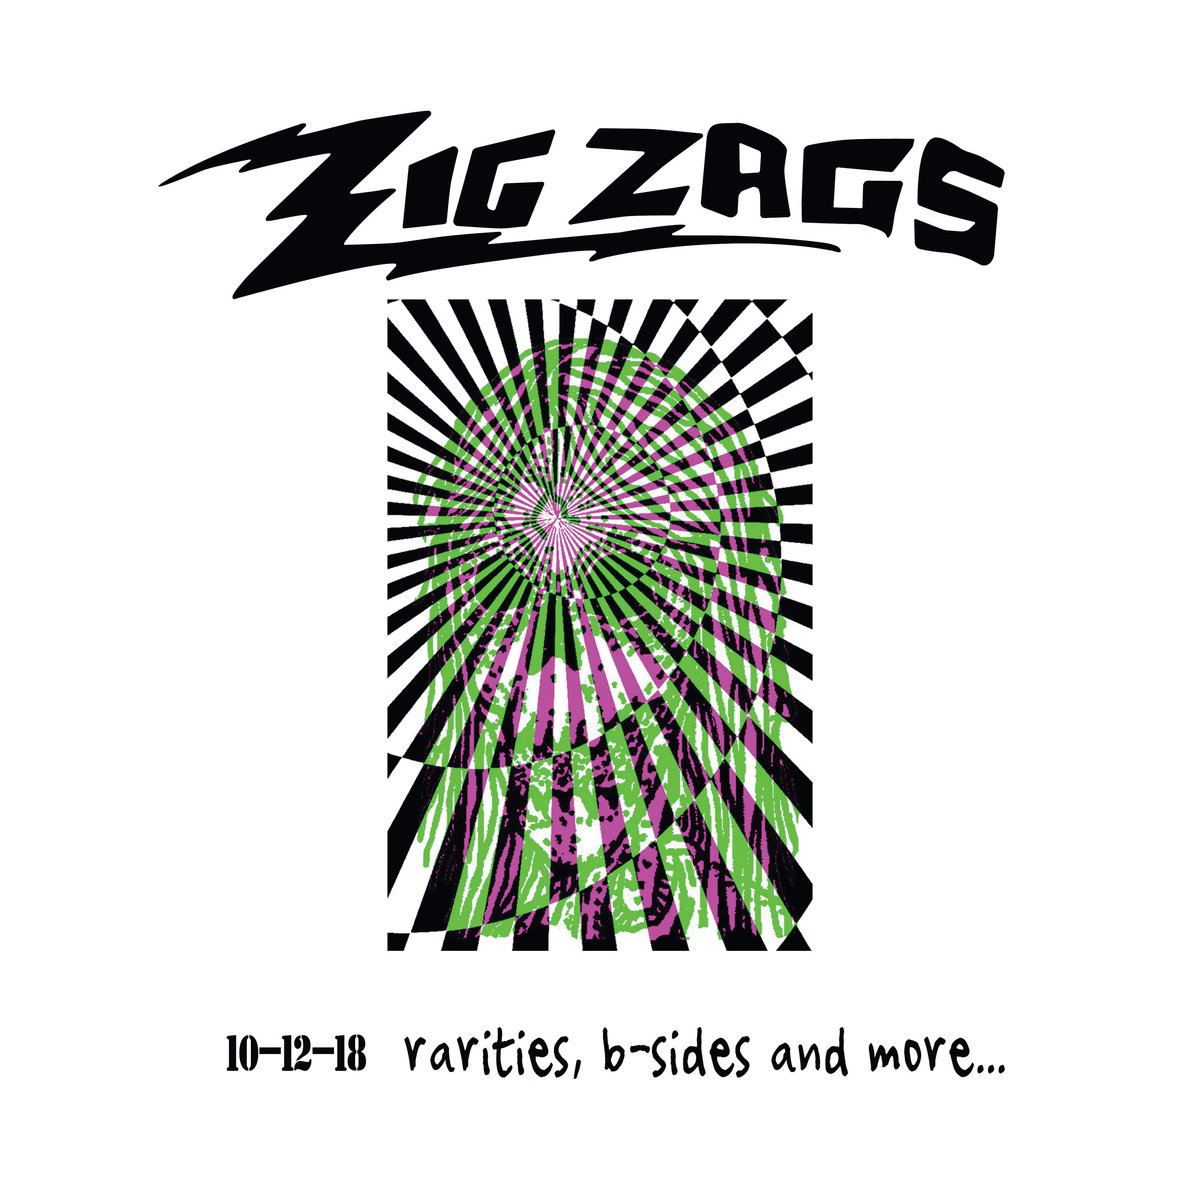 Zig Zags - 10-12-18 rarities, b-sides, and more...